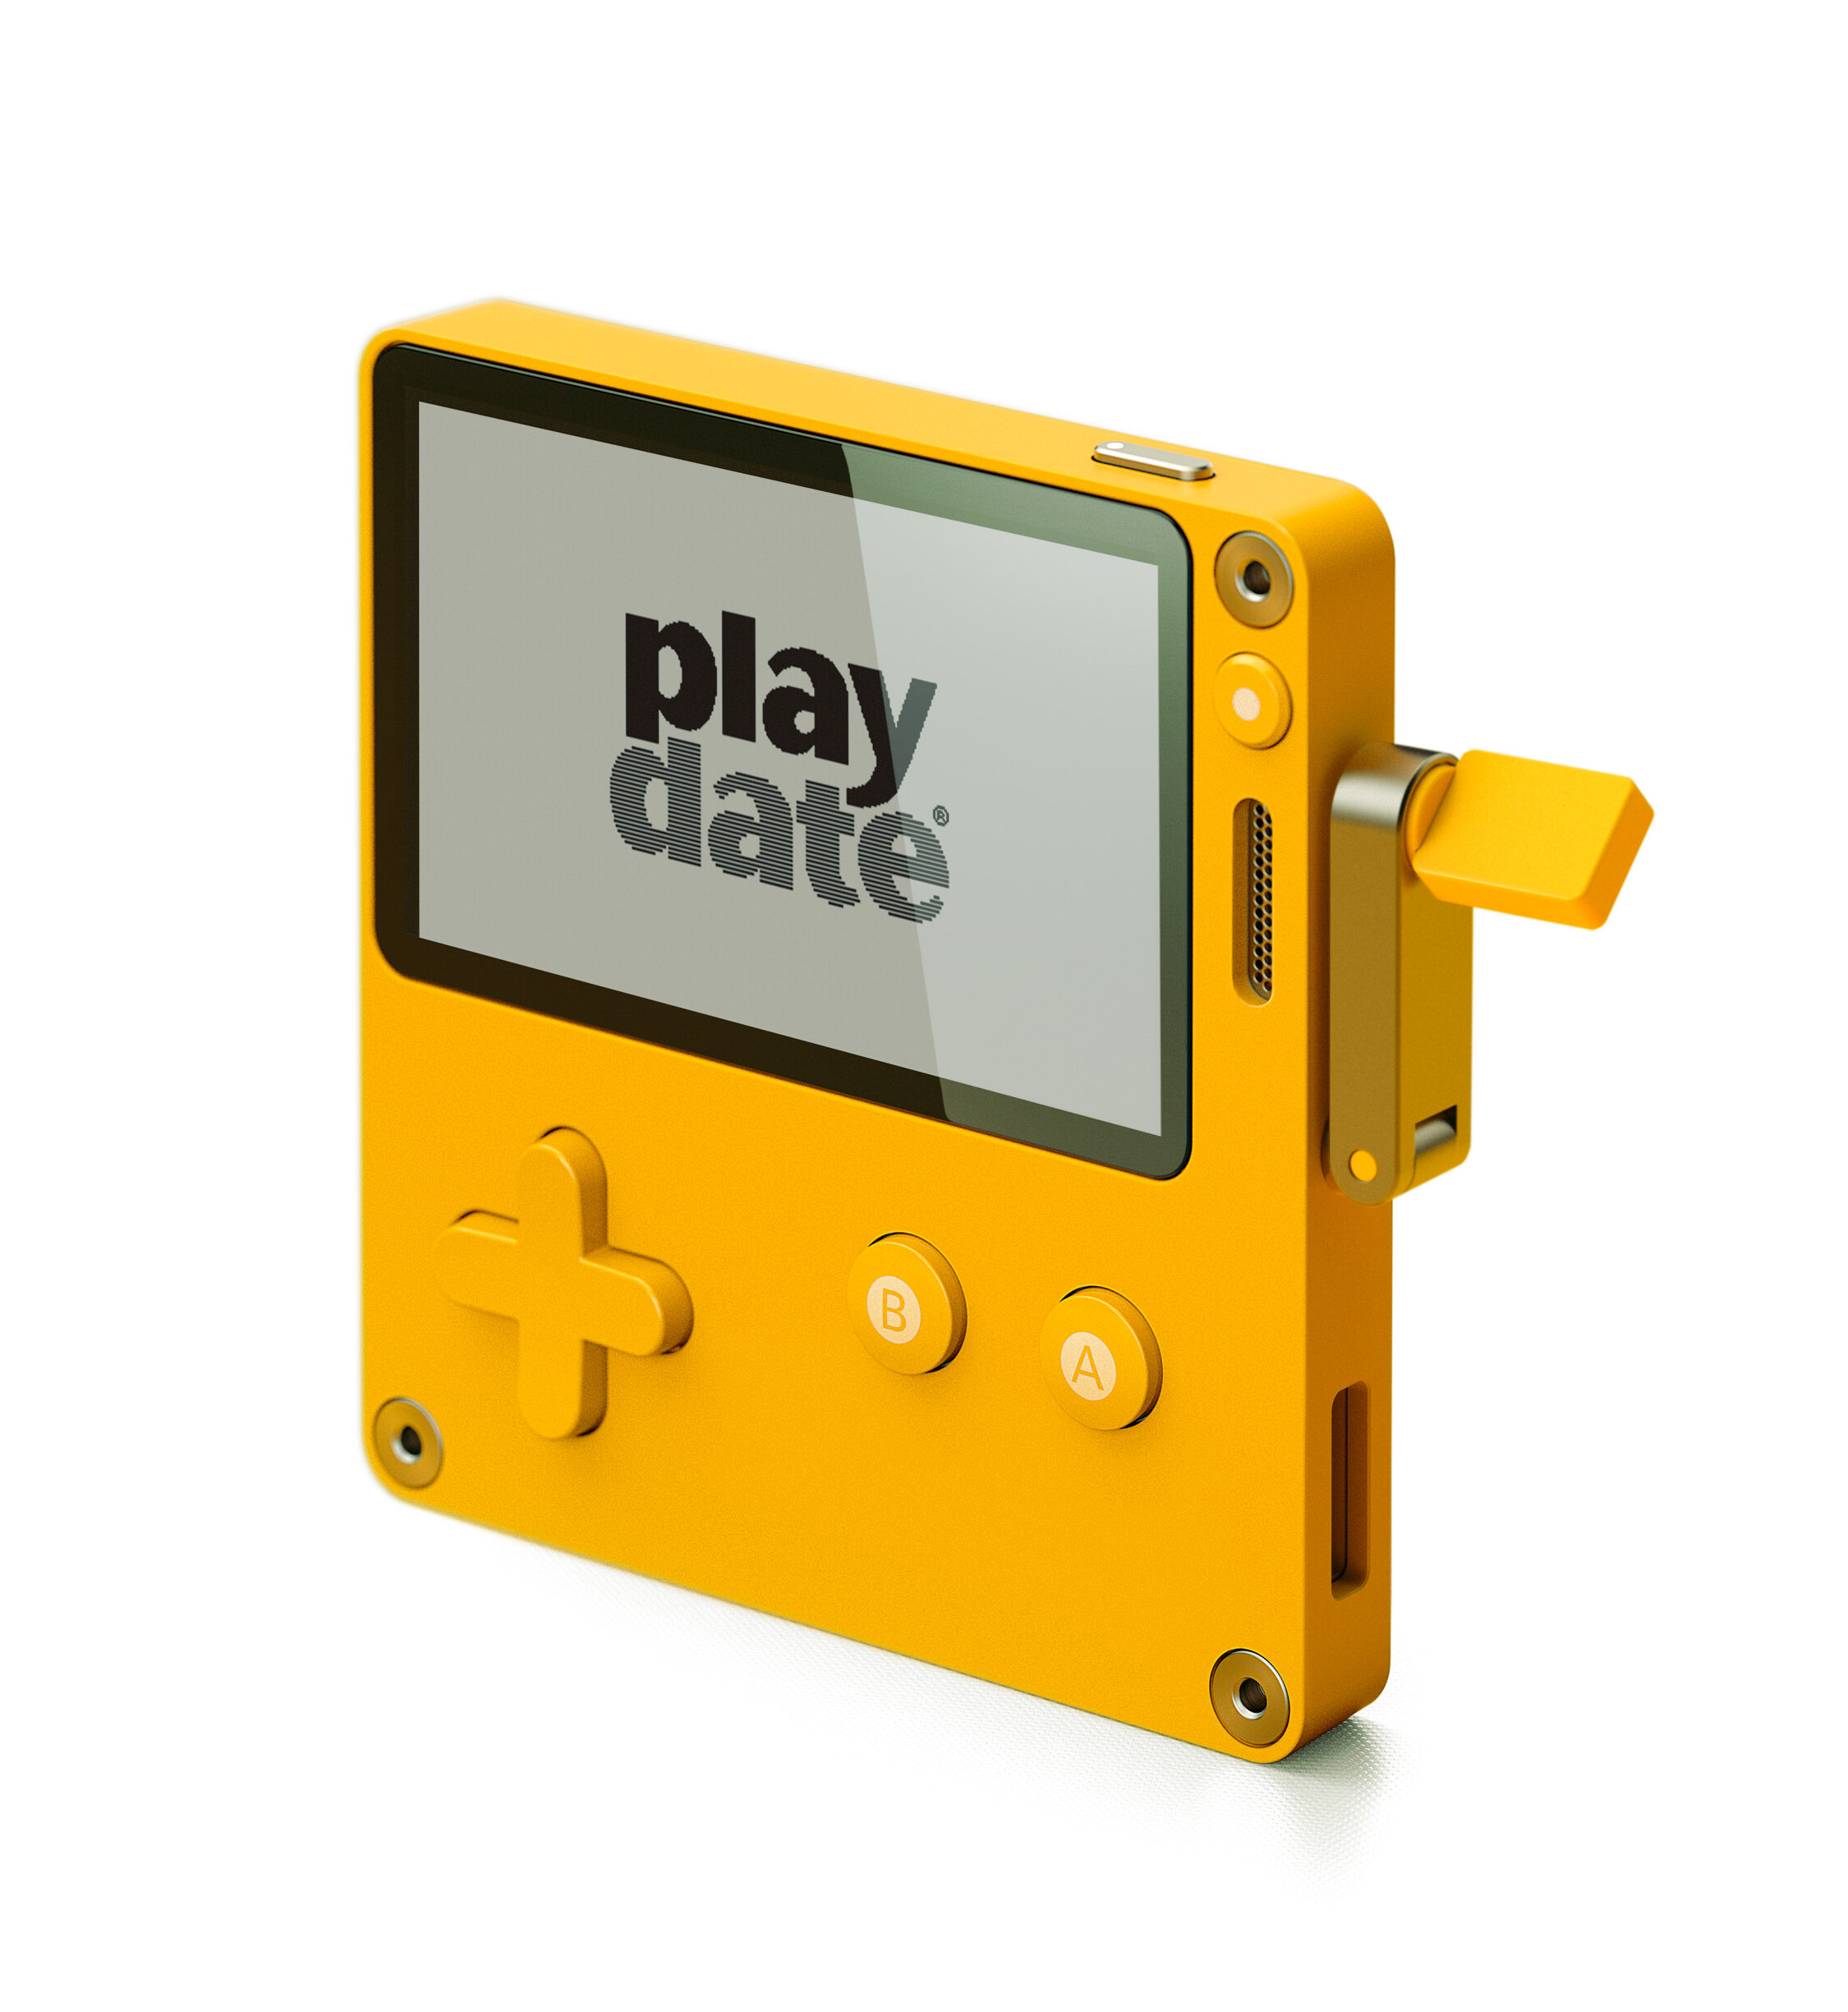 The Playdate, a new portable gaming device produced in Portland, Ore., will finally be available for pre-order next month. It will ship with twice as